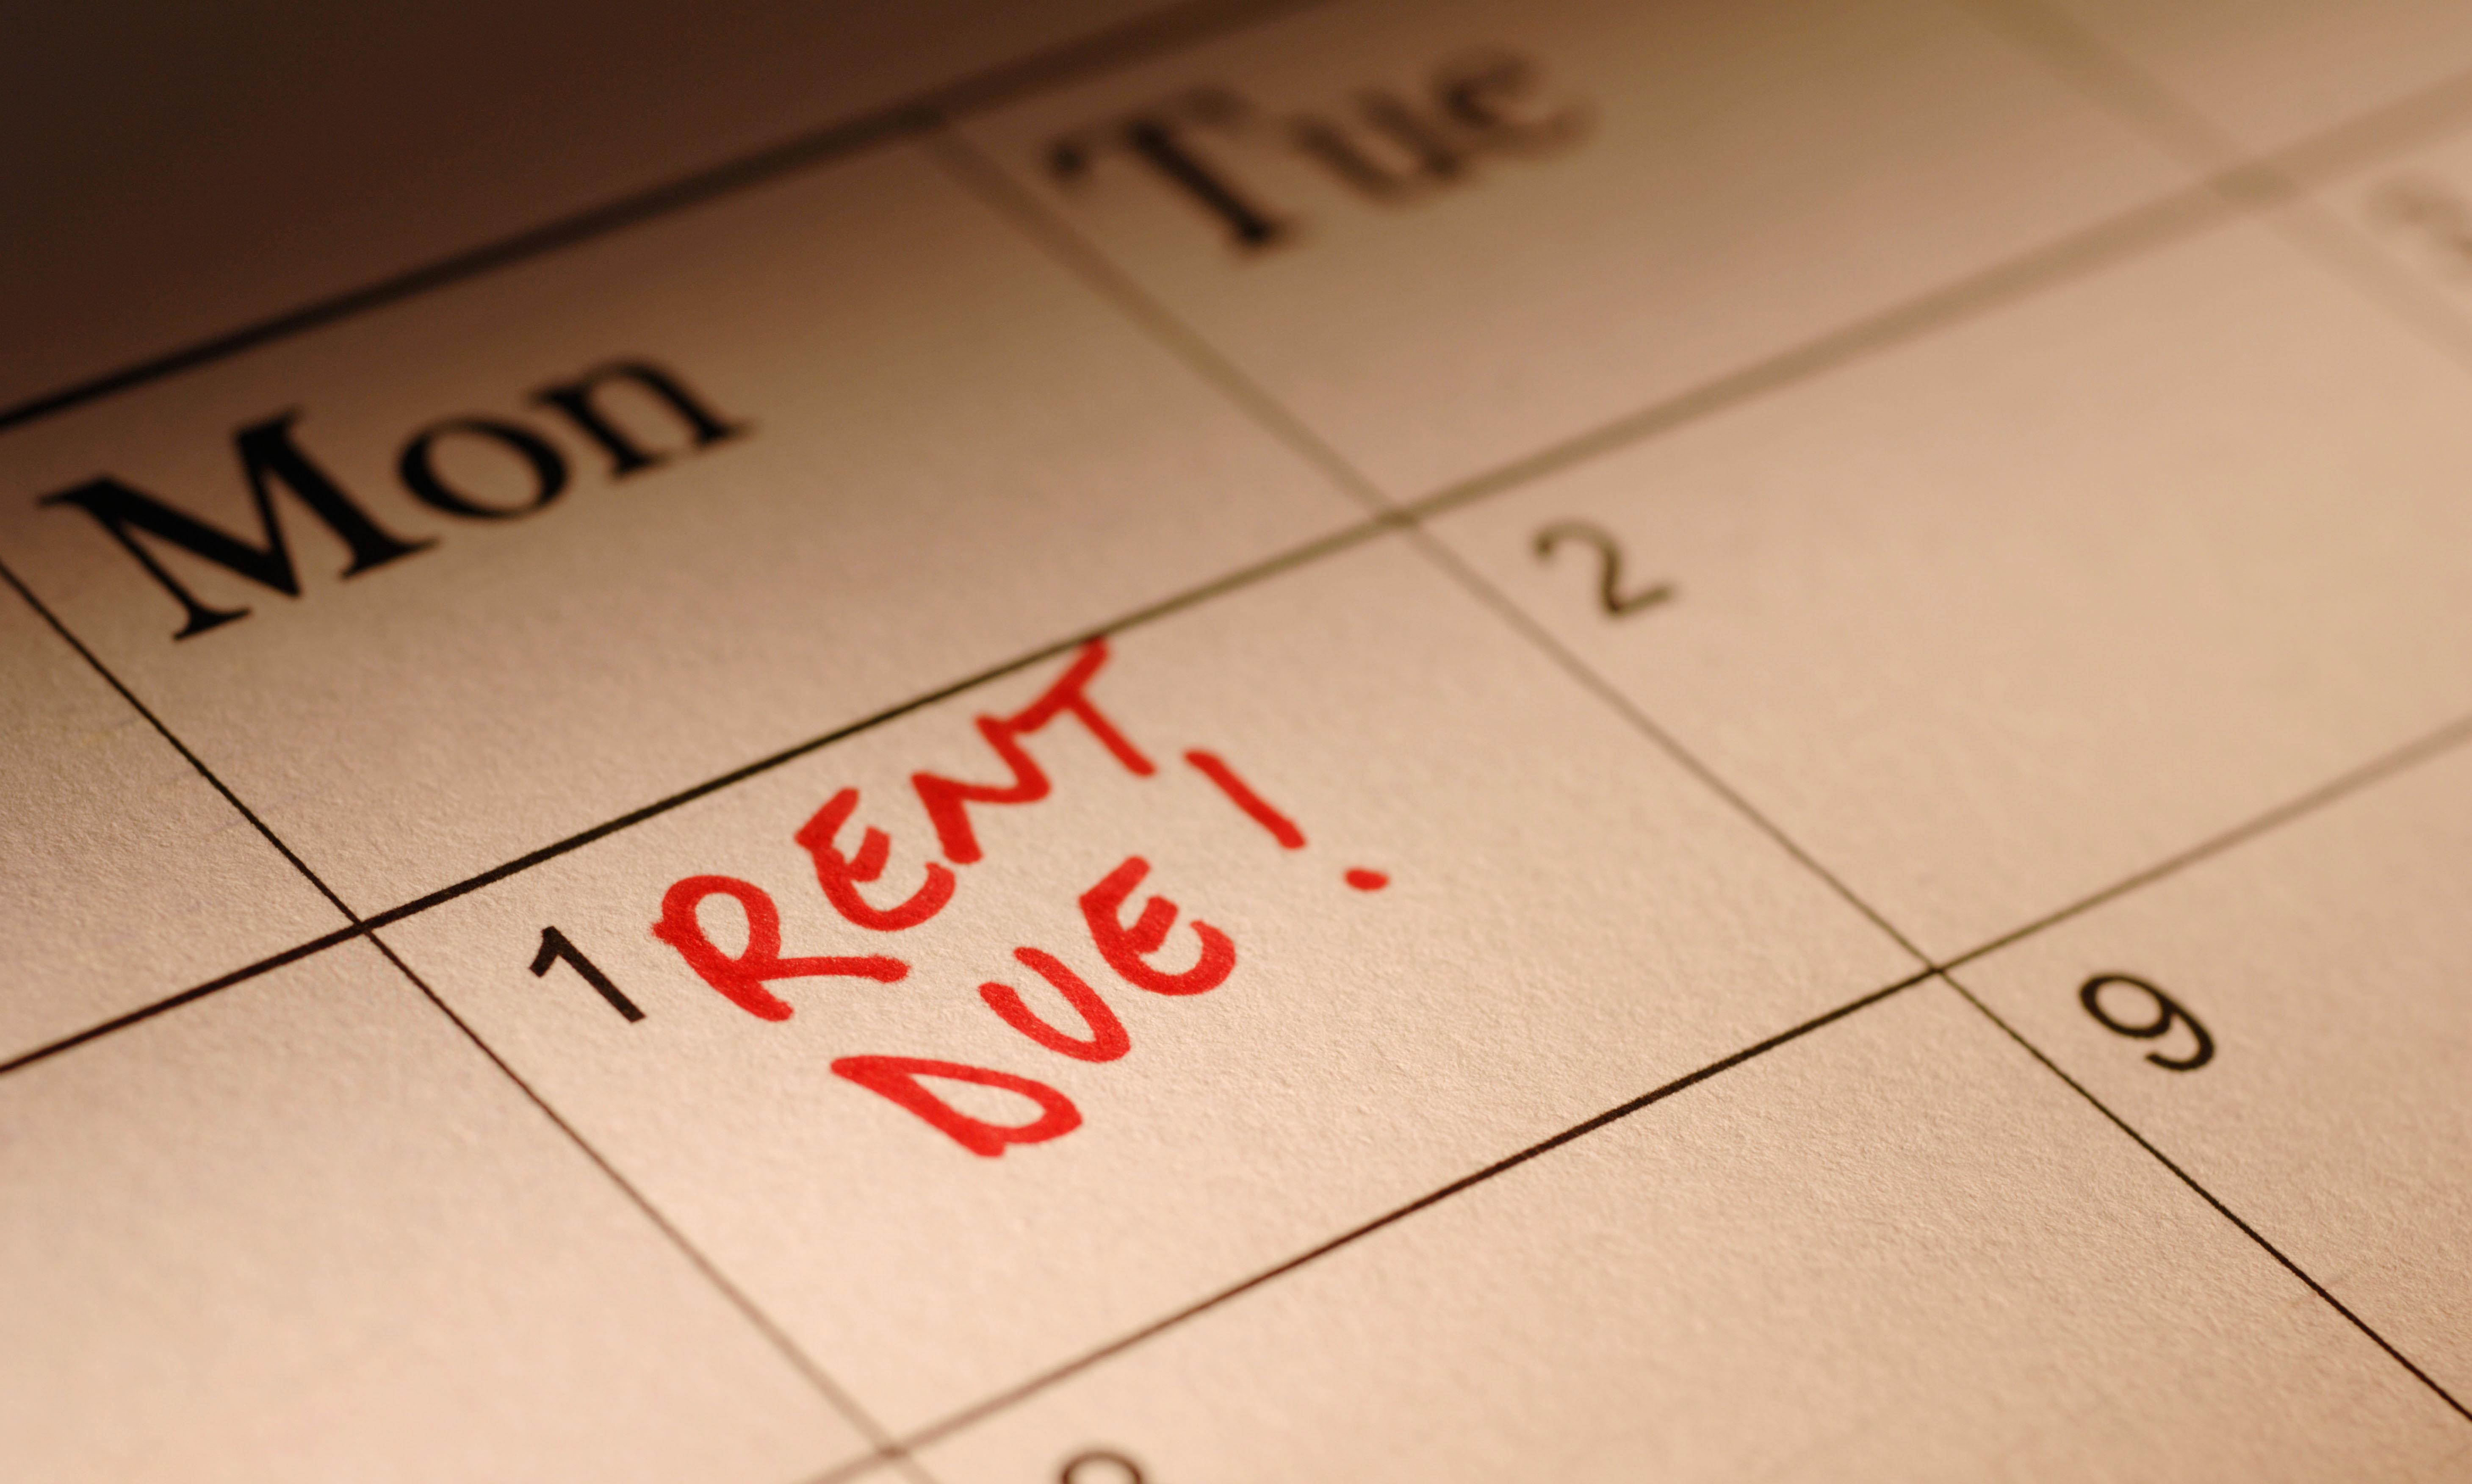 Test case: Using CRAR and Forfeiture for rent arrears.